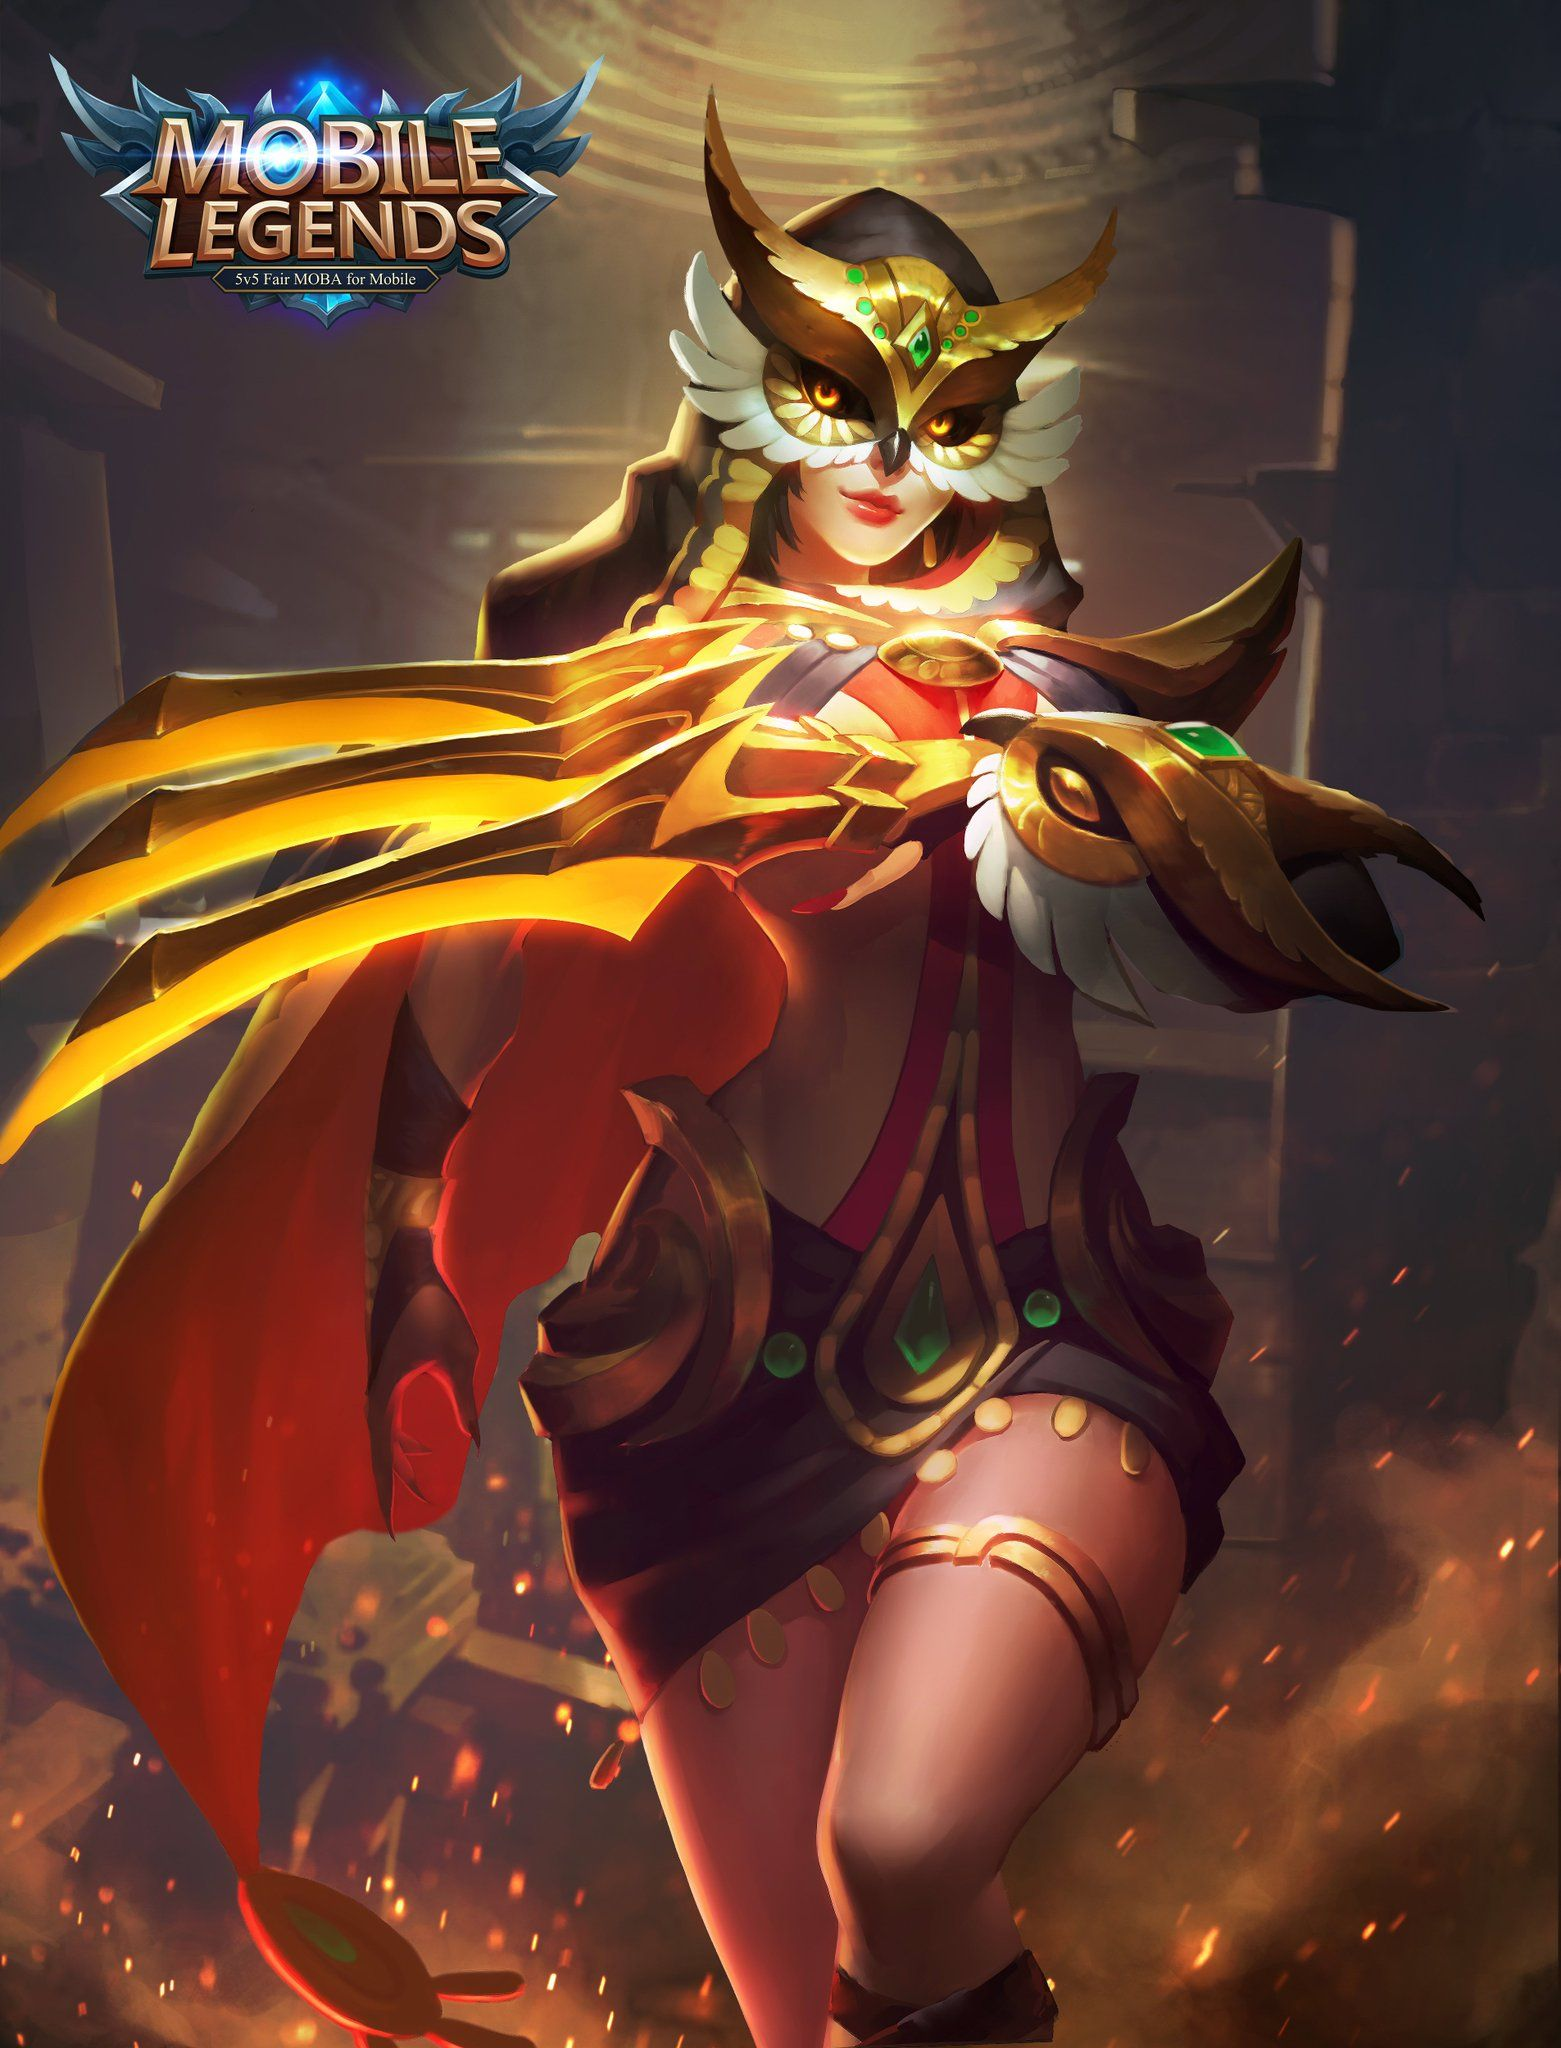 Wallpaper-Mobile-Legends-Freya-Valkrie